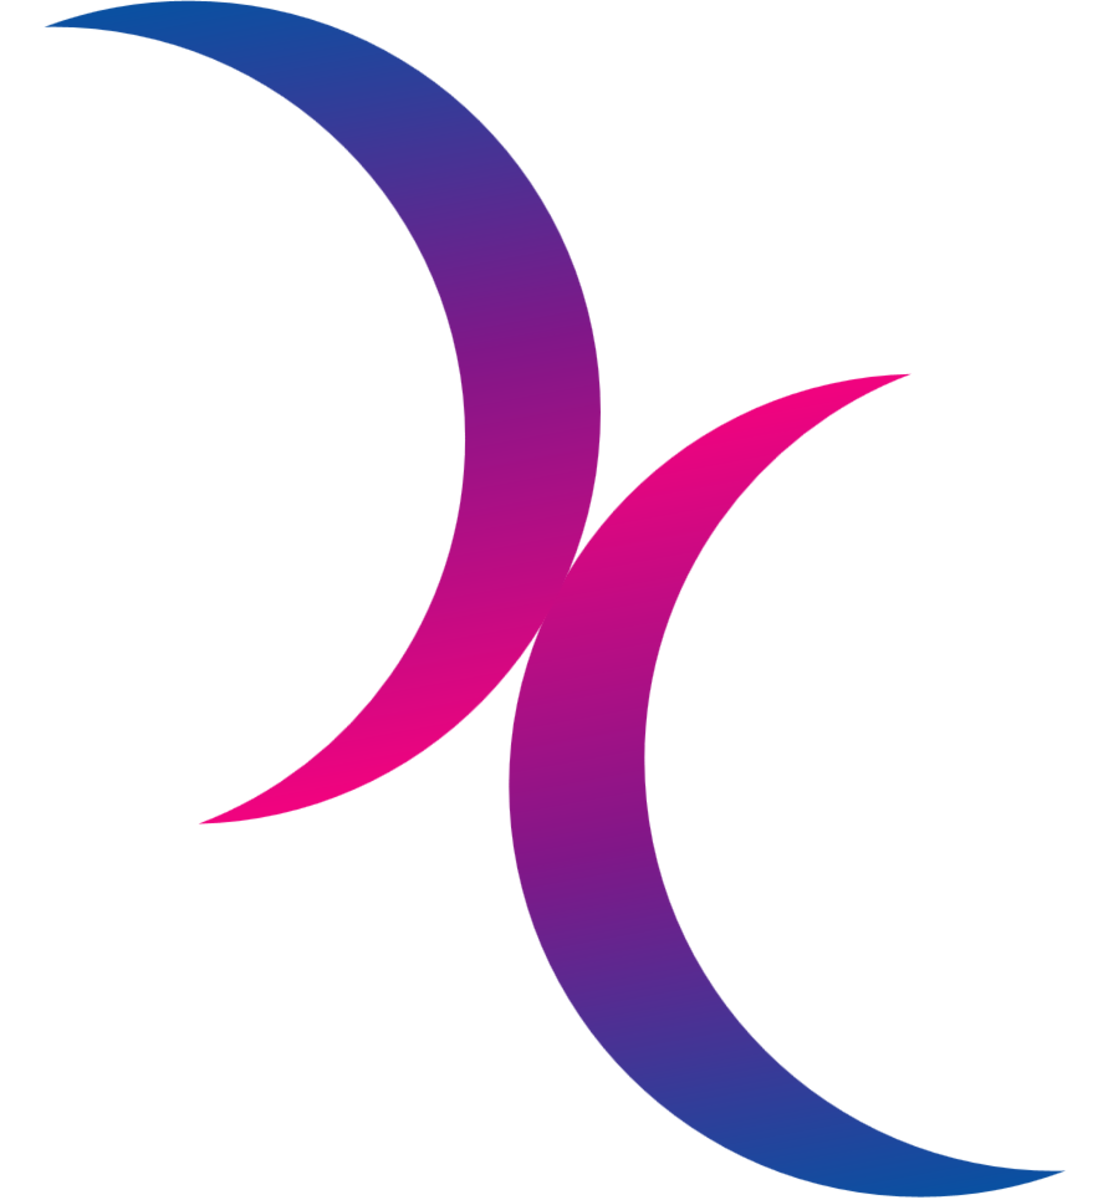 The Bi Double Moon Symbol